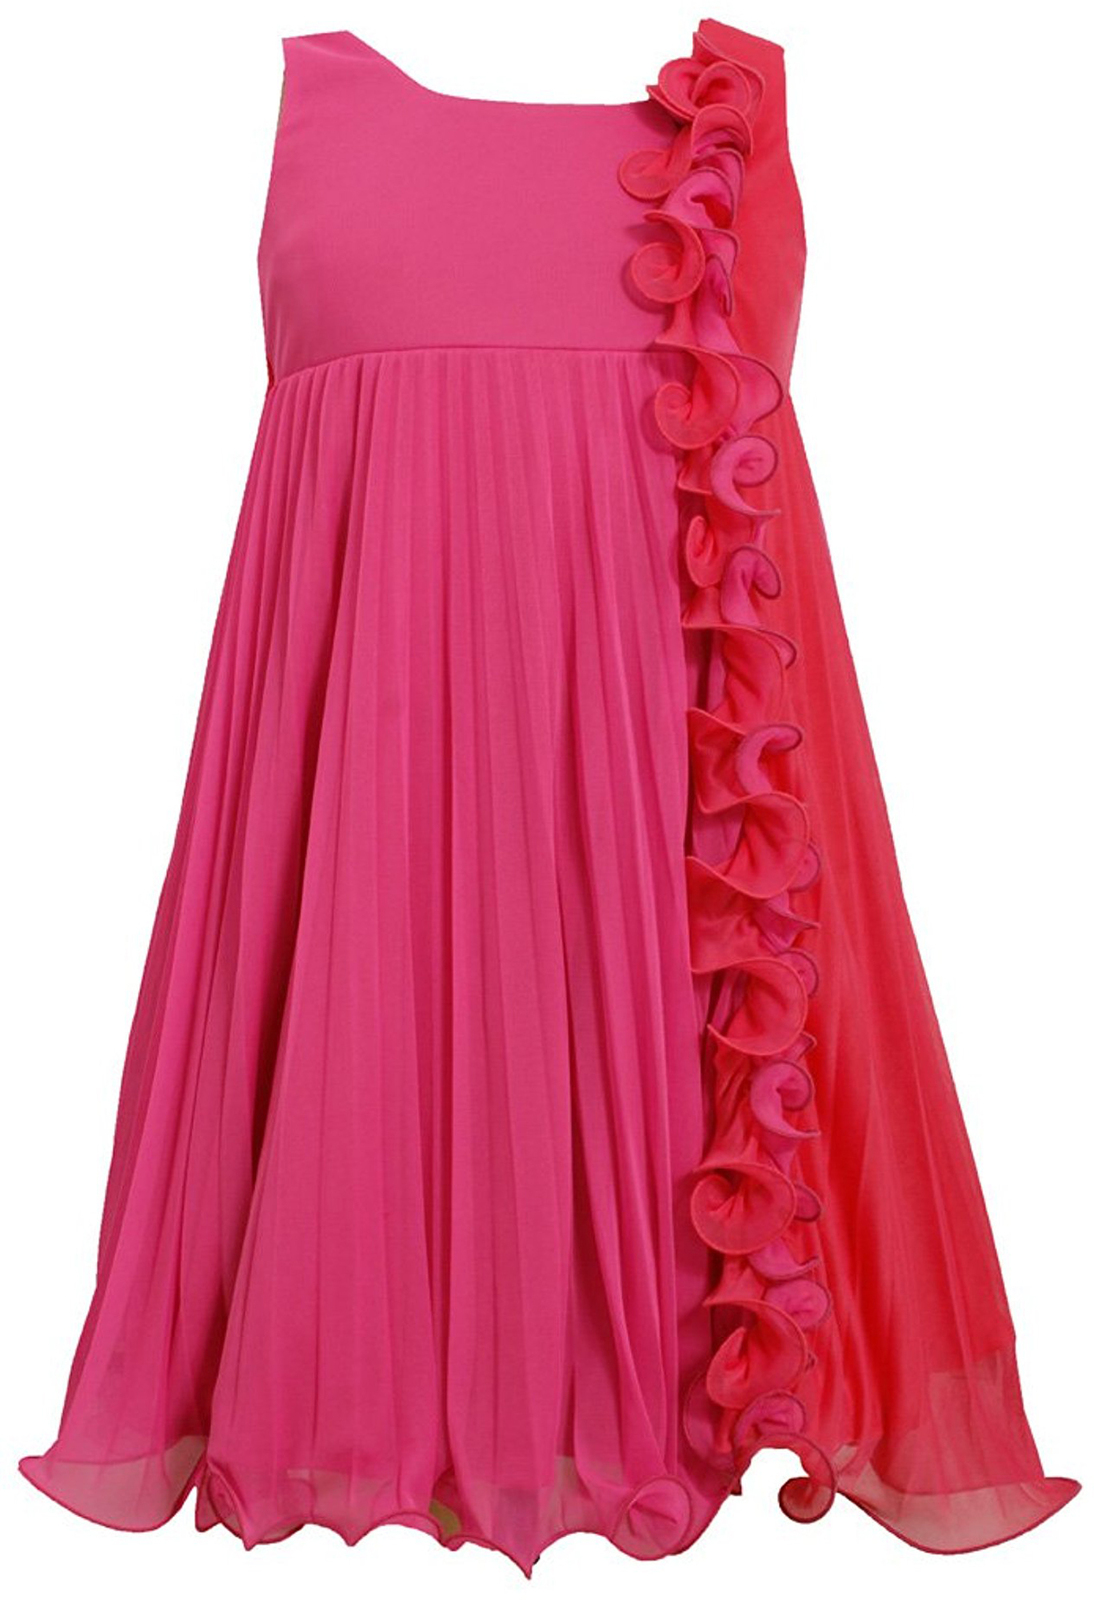 Little-Girls 2T-6X Fuchsia Pink Colorblock Wire Ruffle Pleated Chiffon Dress, 6